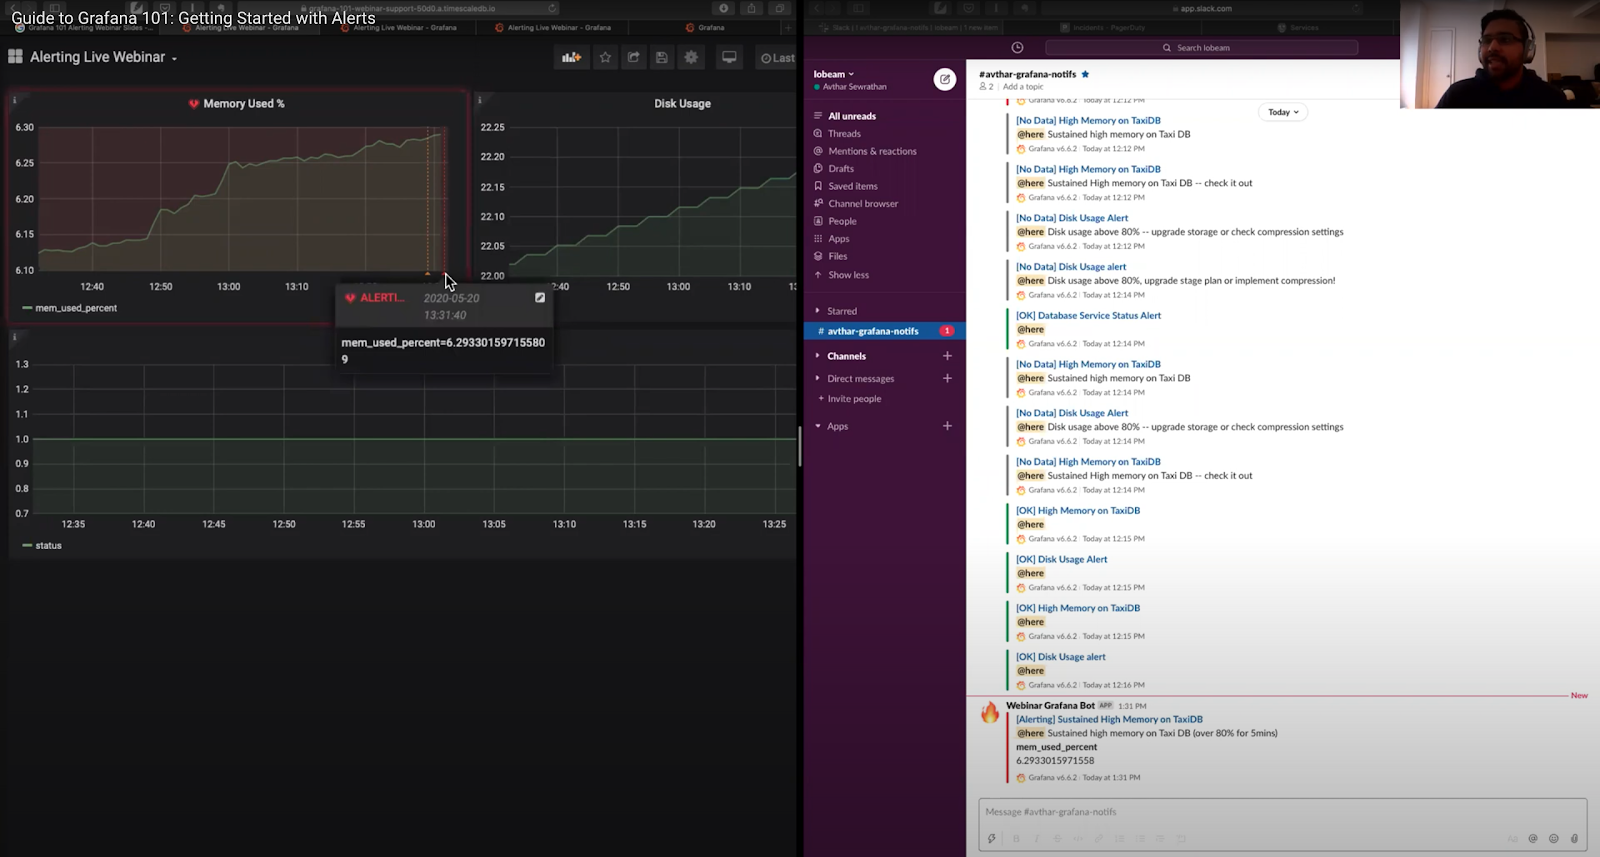 Grafana dashboard and Slack channel side by side, showing an alert from Grafana sent to Slack